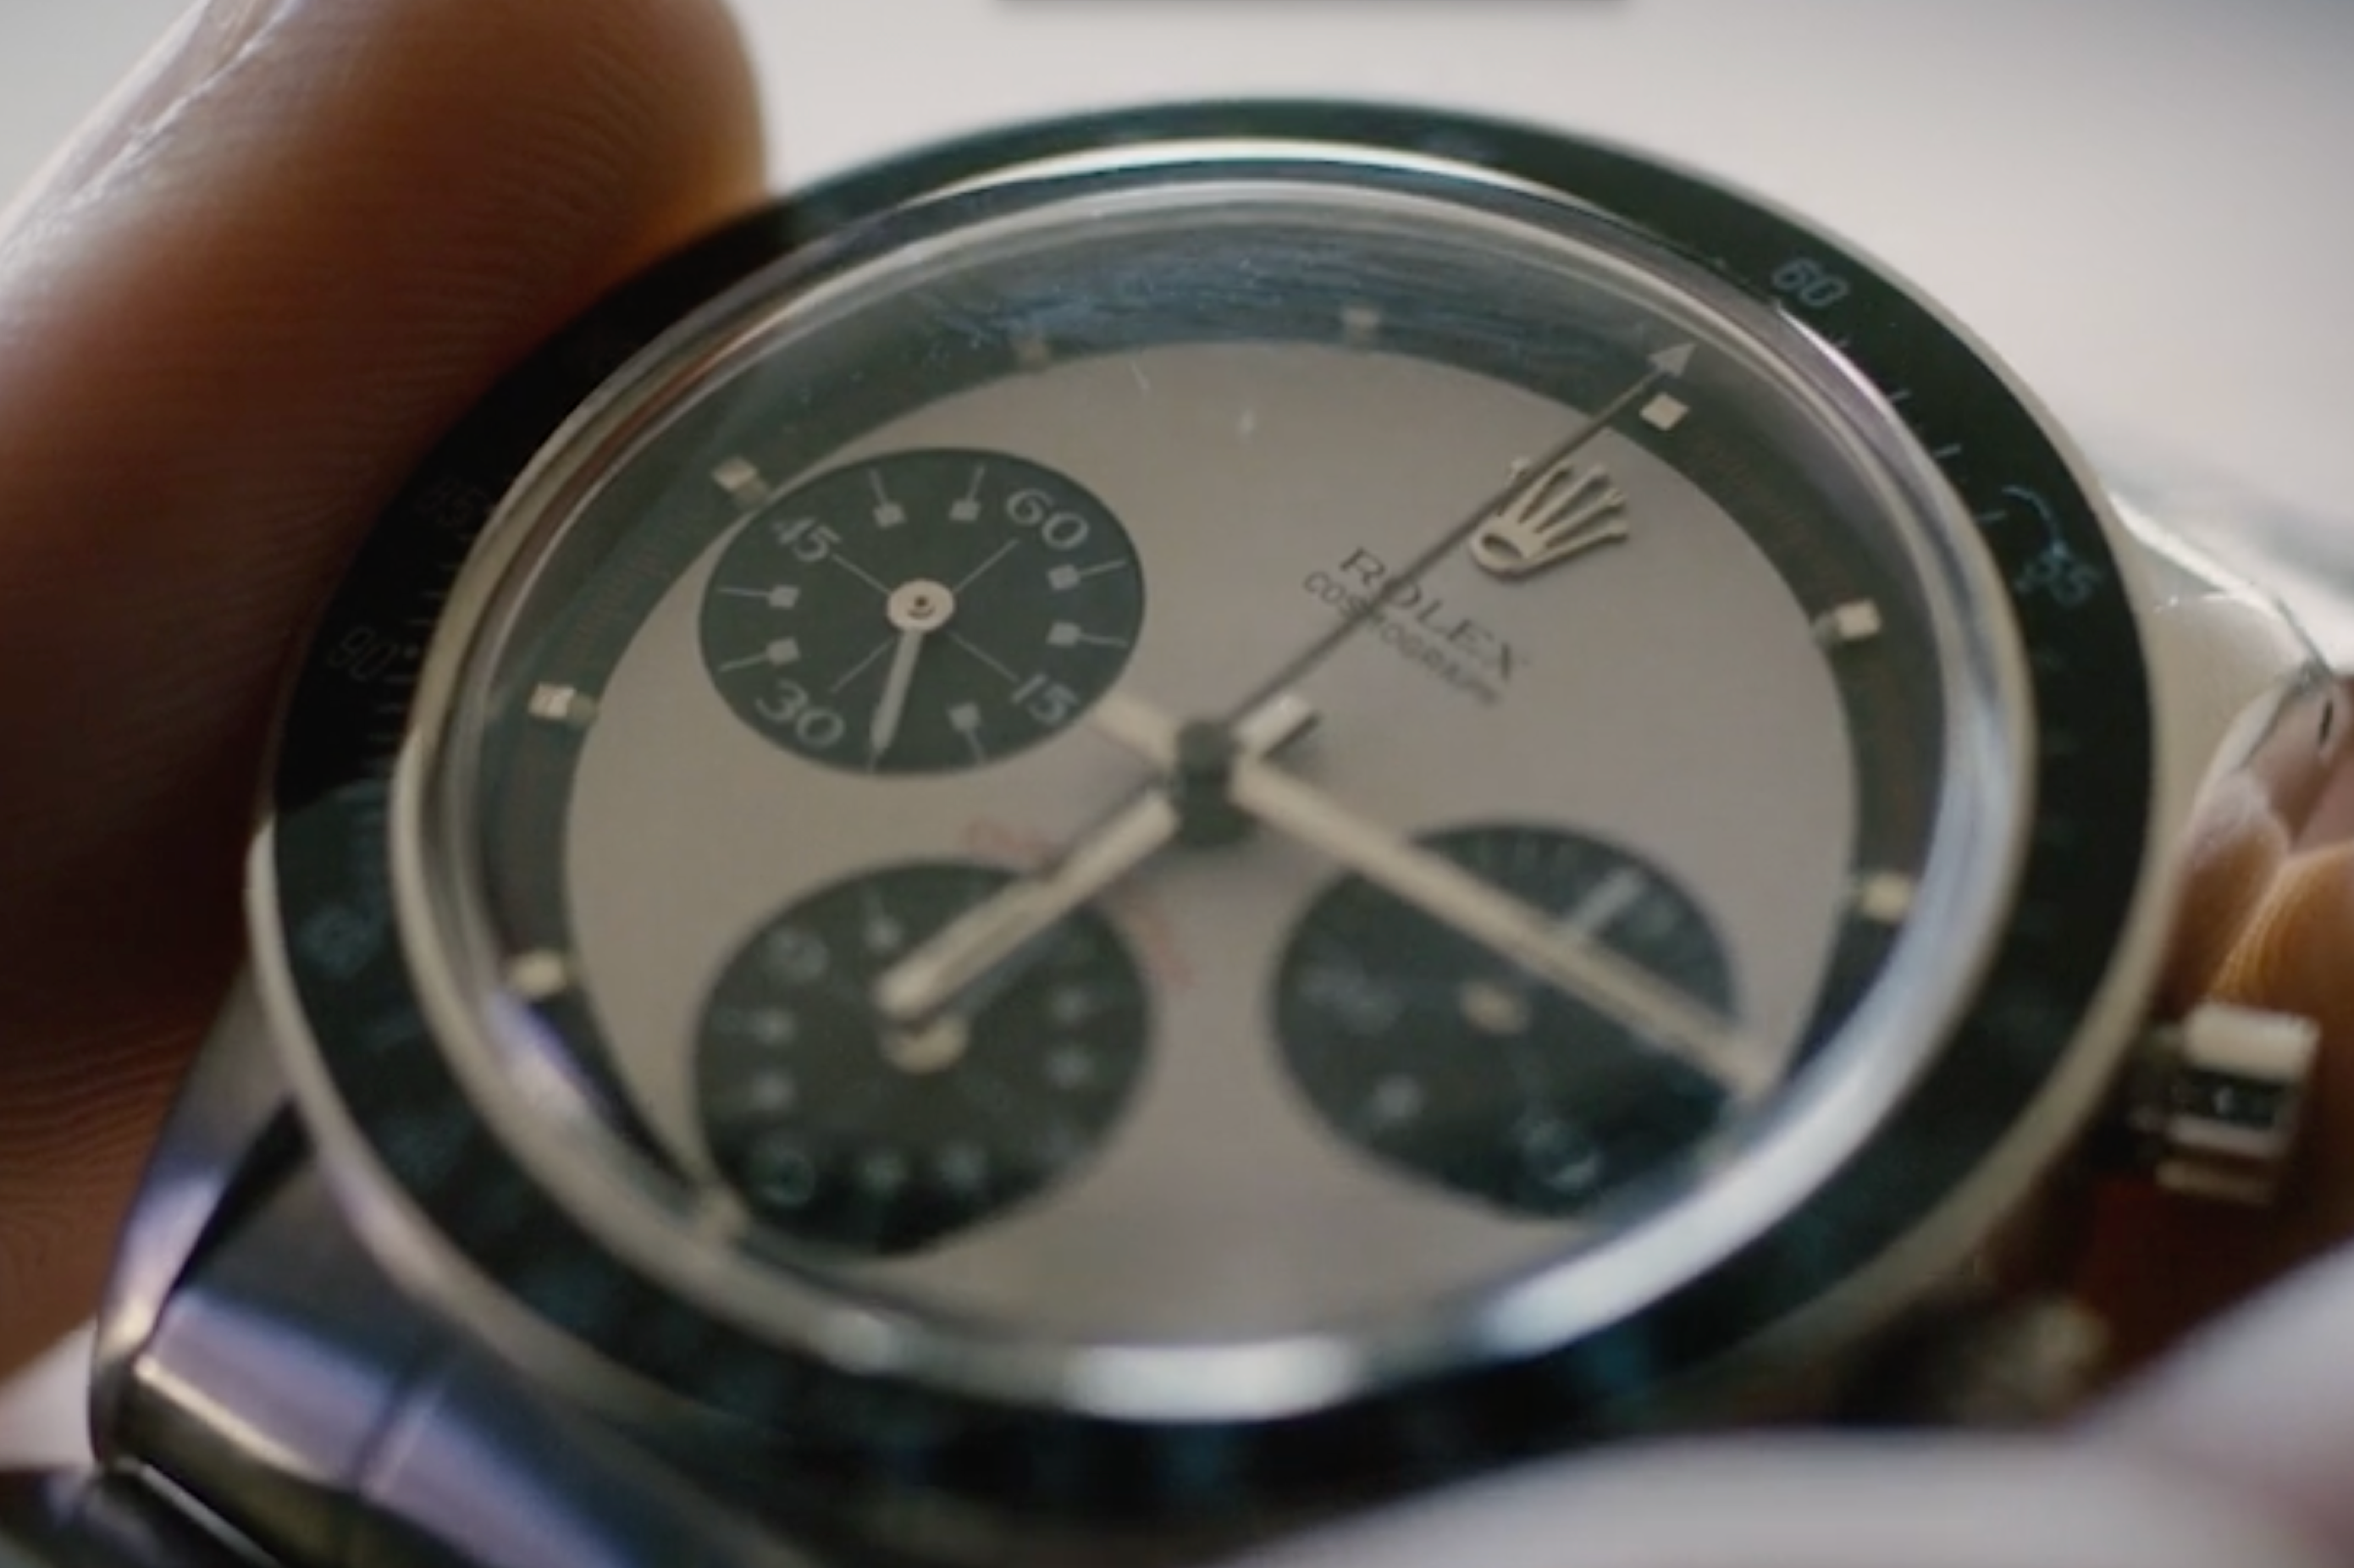 Ben Clymer - Becoming A Watch Collector With Hodinkee